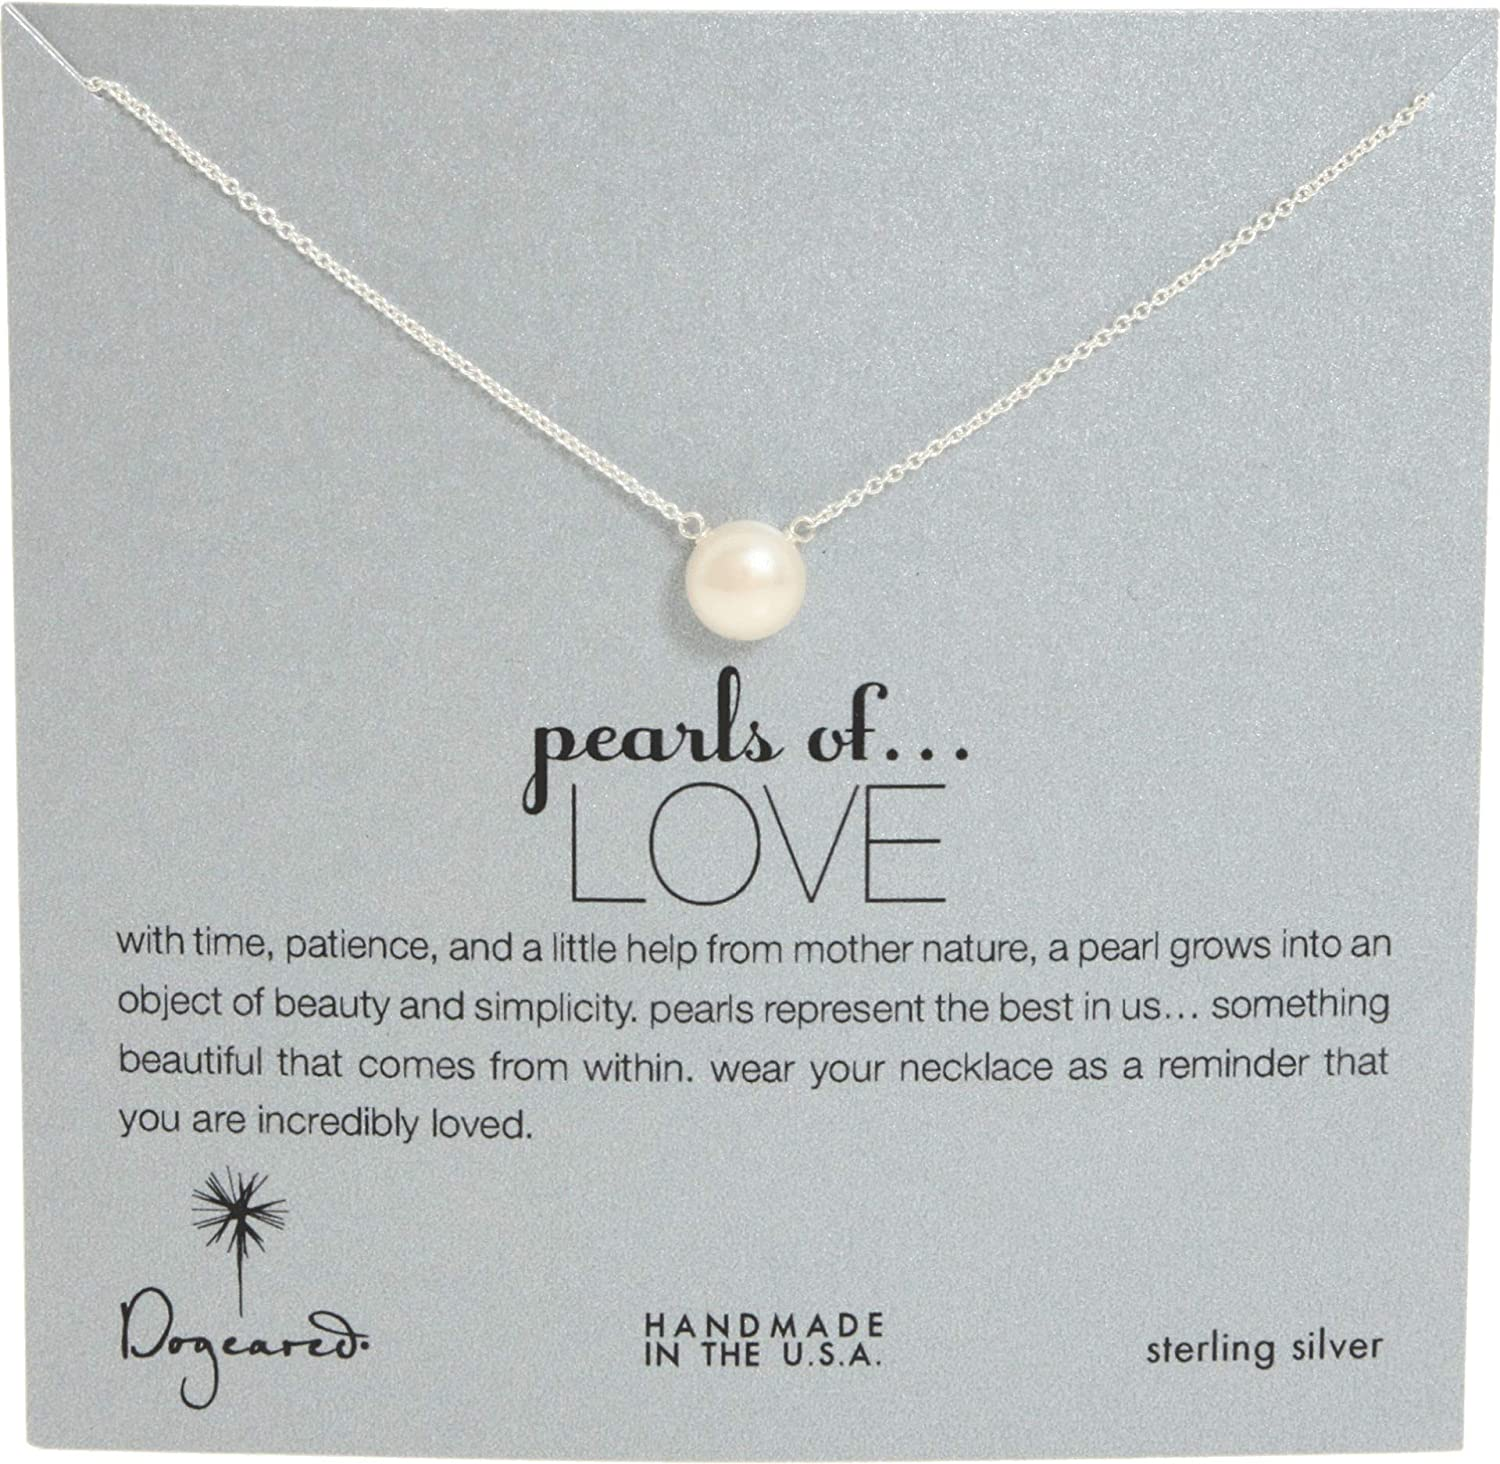 f26ccffcf9611 Dogeared Pearls of Love 8mm Freshwater Pearl Necklace, 18